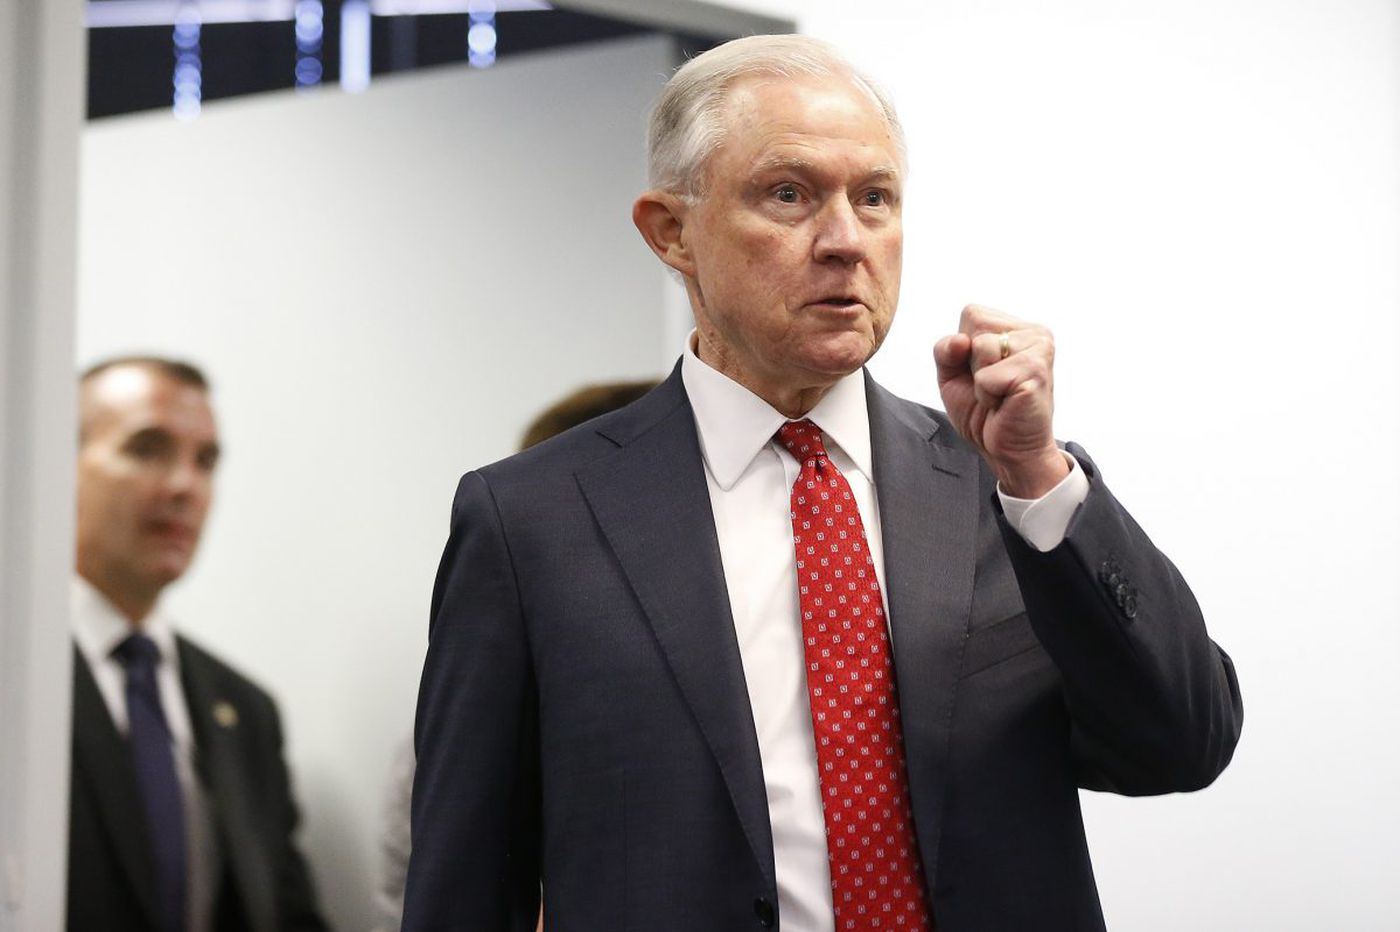 America's top lawman lied under oath. Can we seize his stuff?